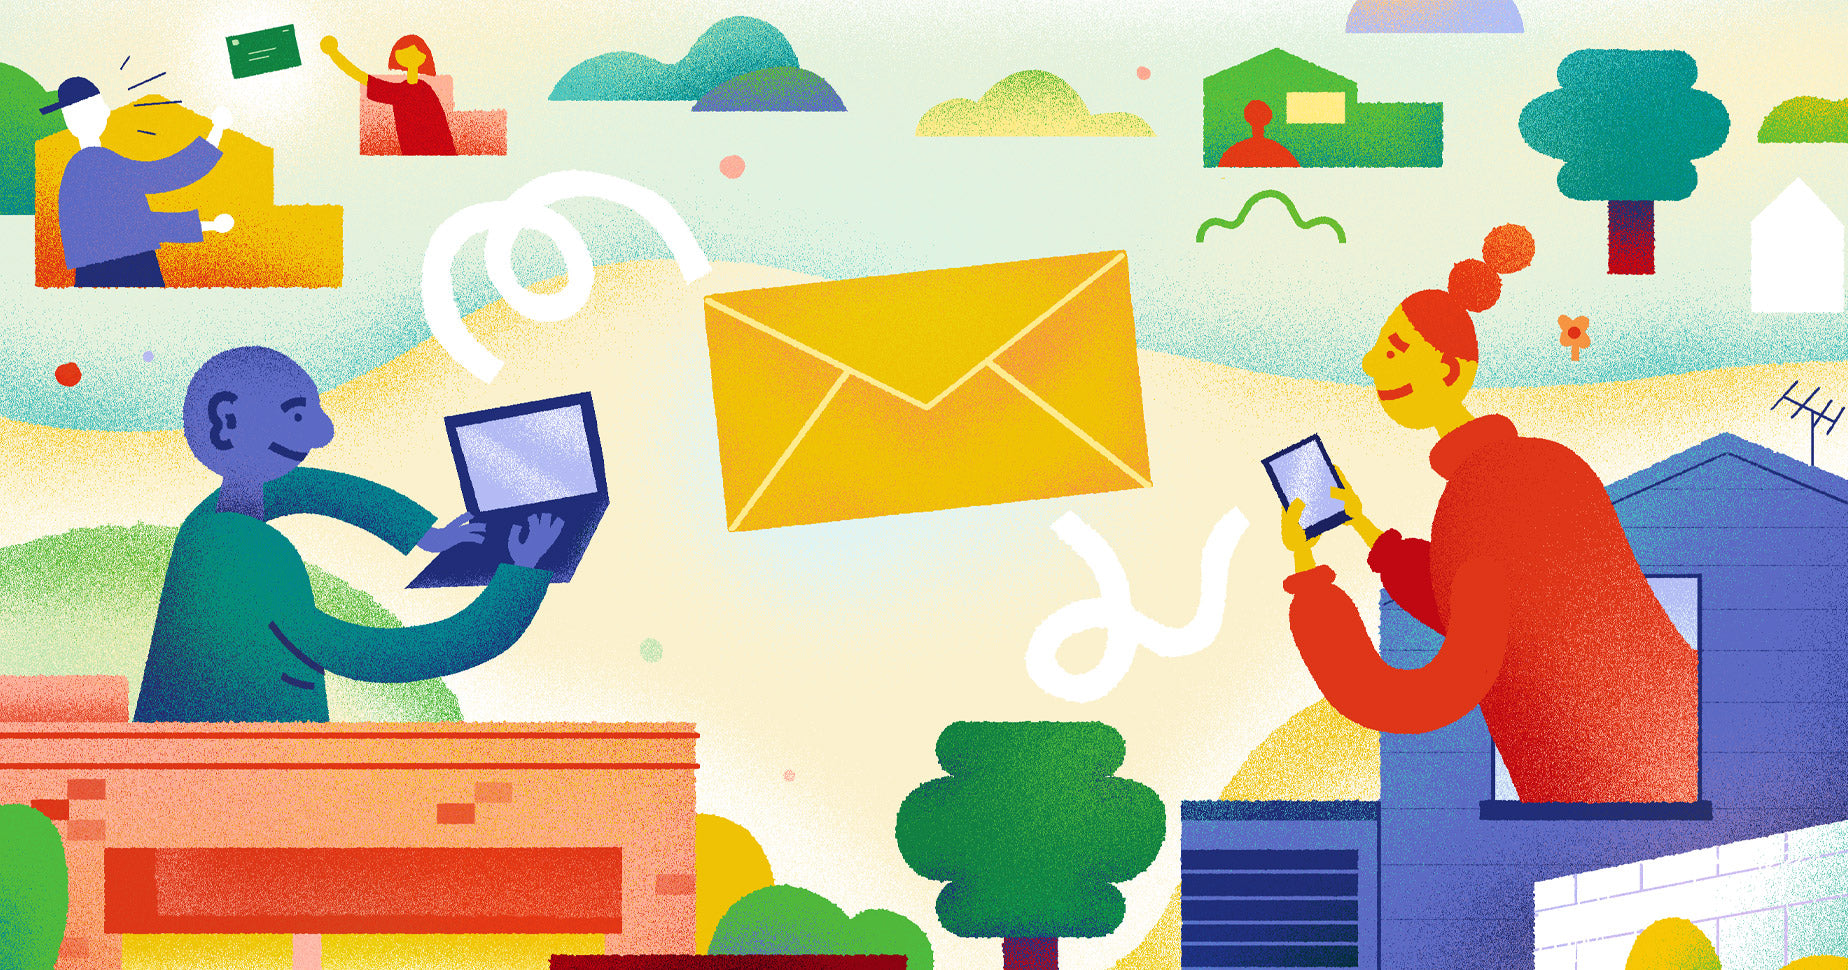 Introduction to email marketing